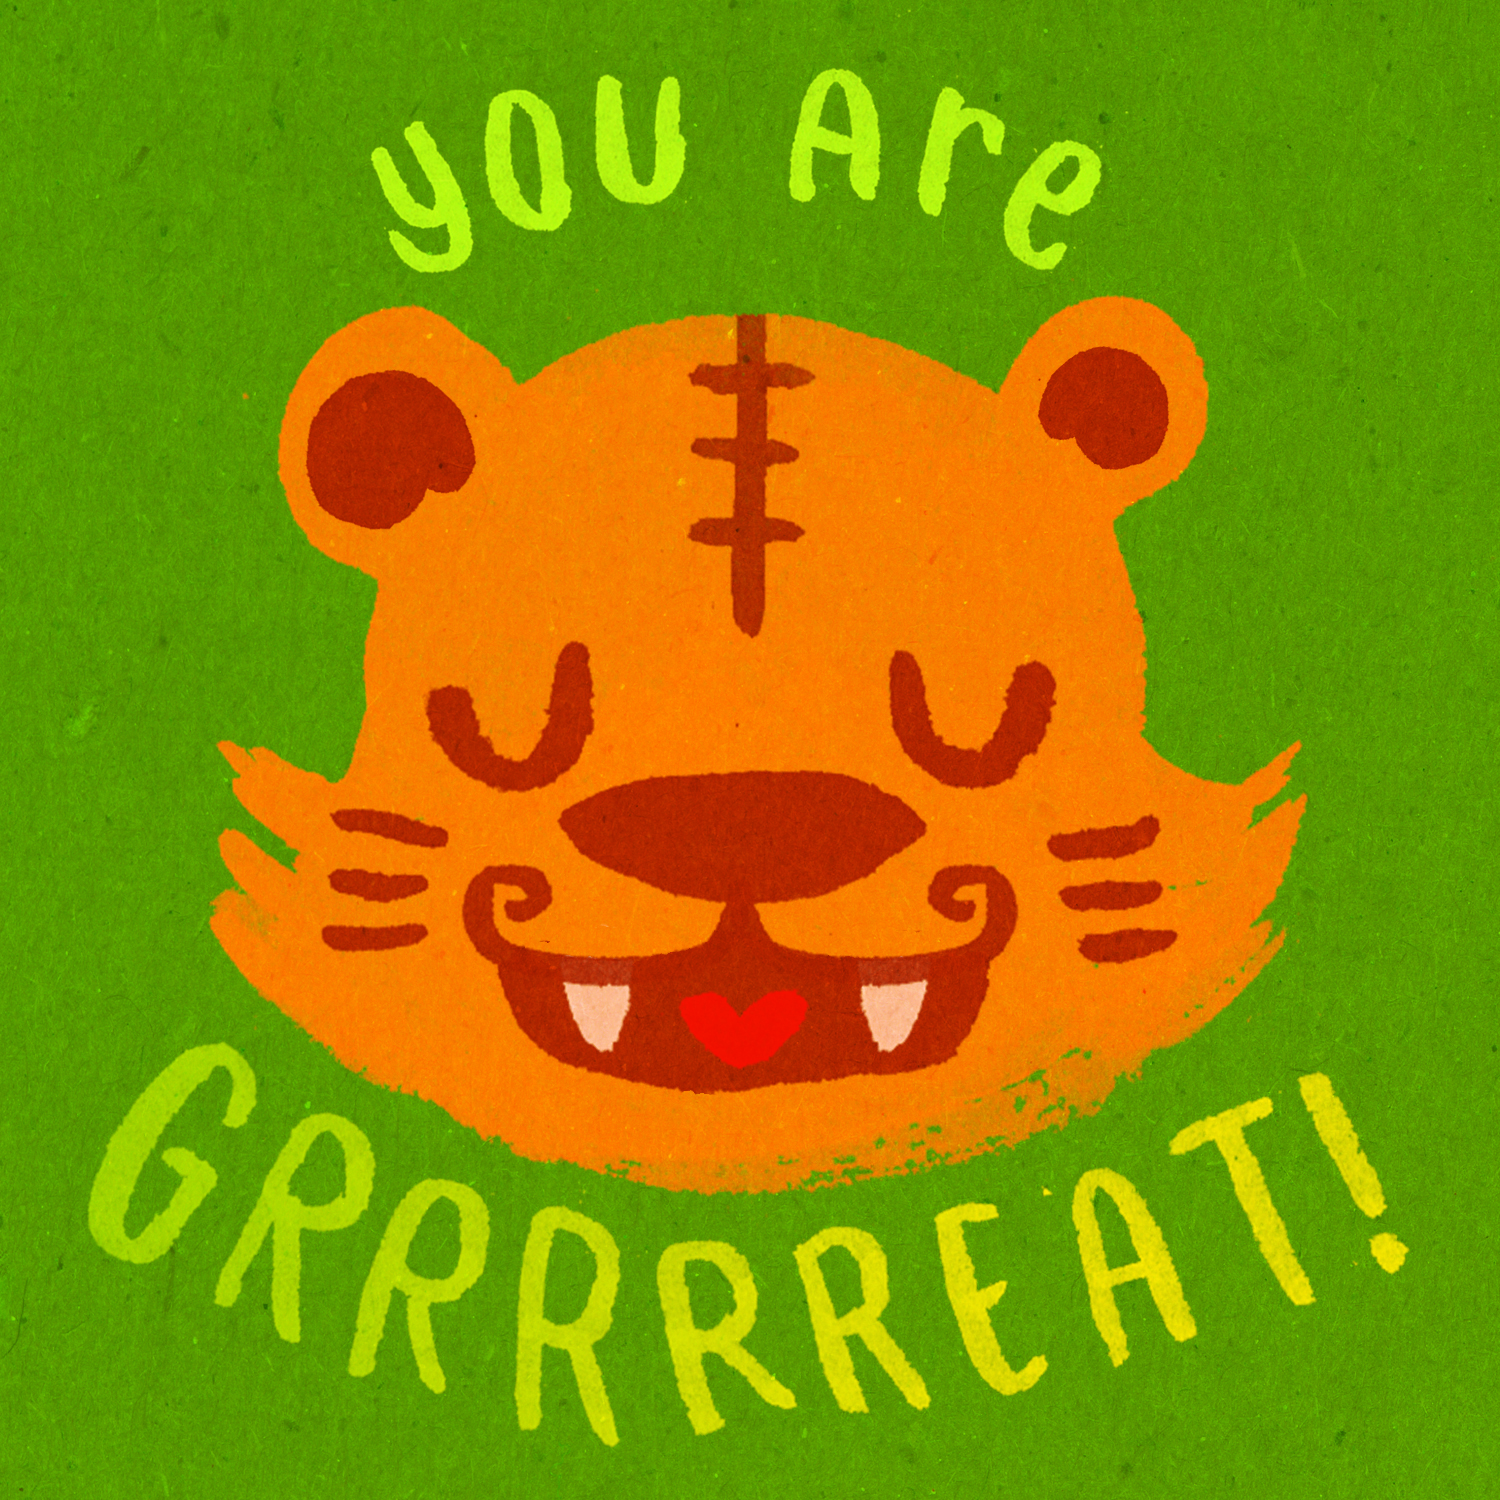 You are Grrrrreat!